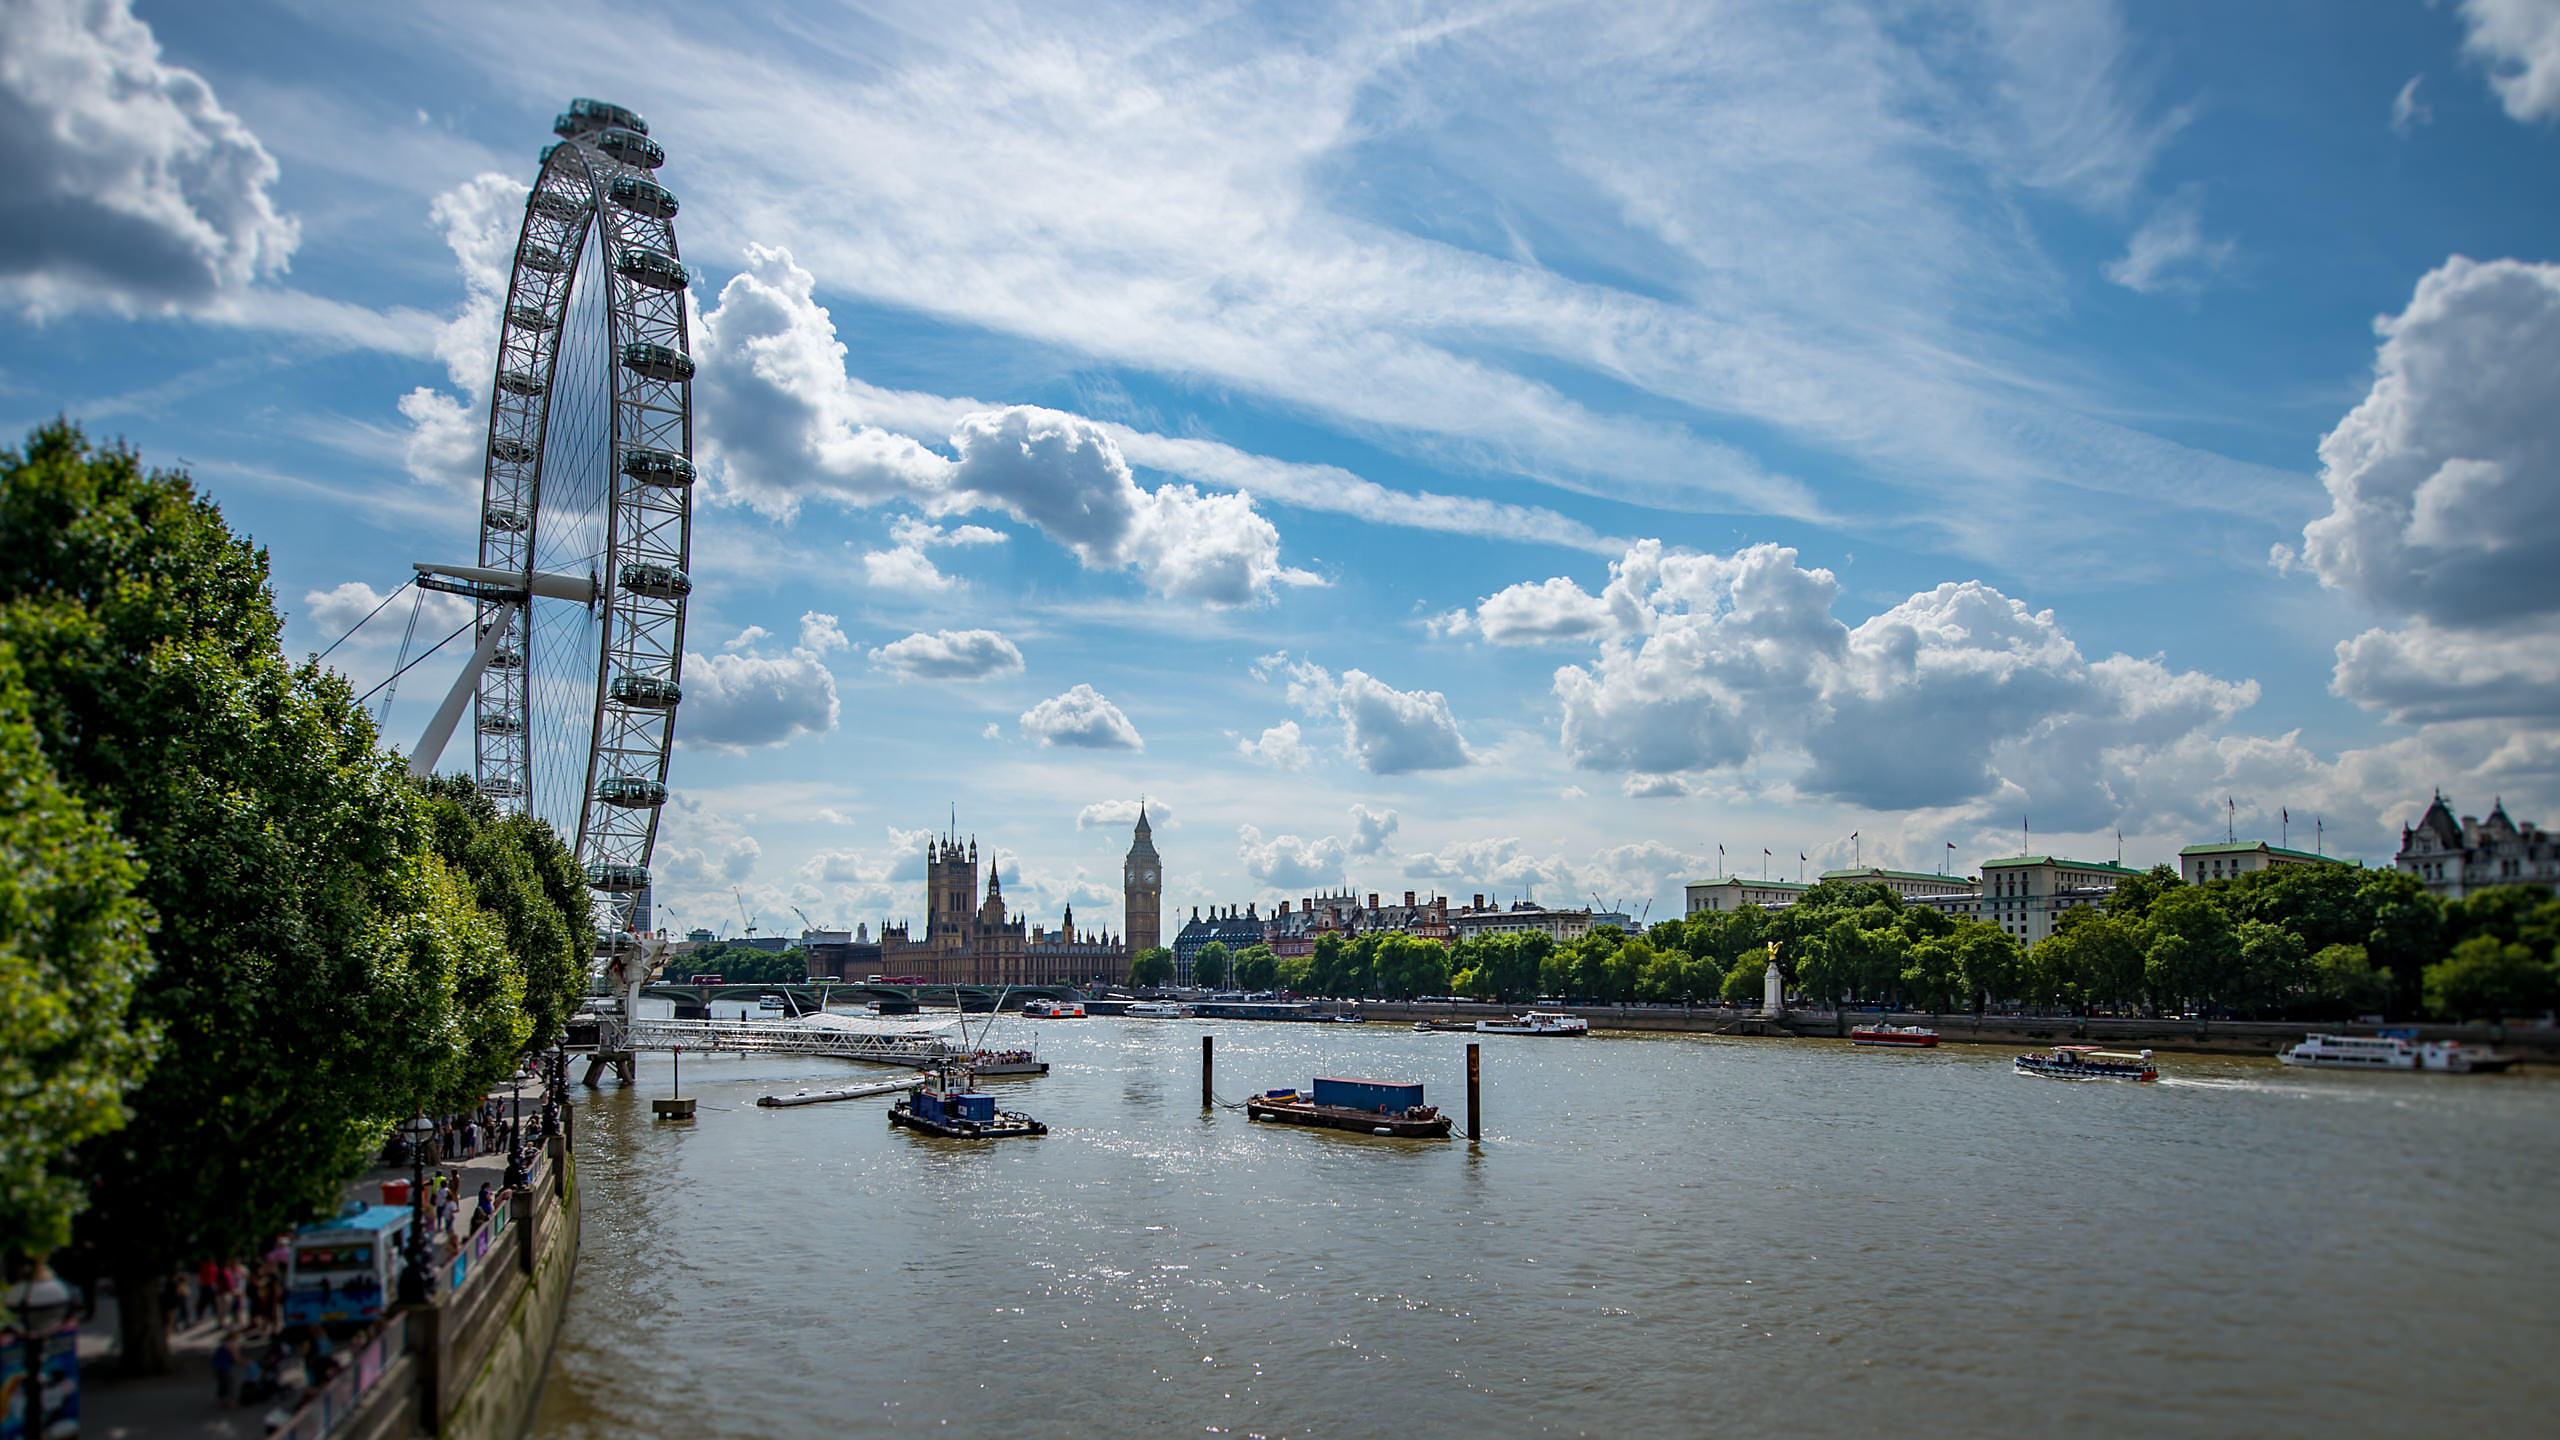 Lonond Eye with Thames, Houses of Parliament and London buildings